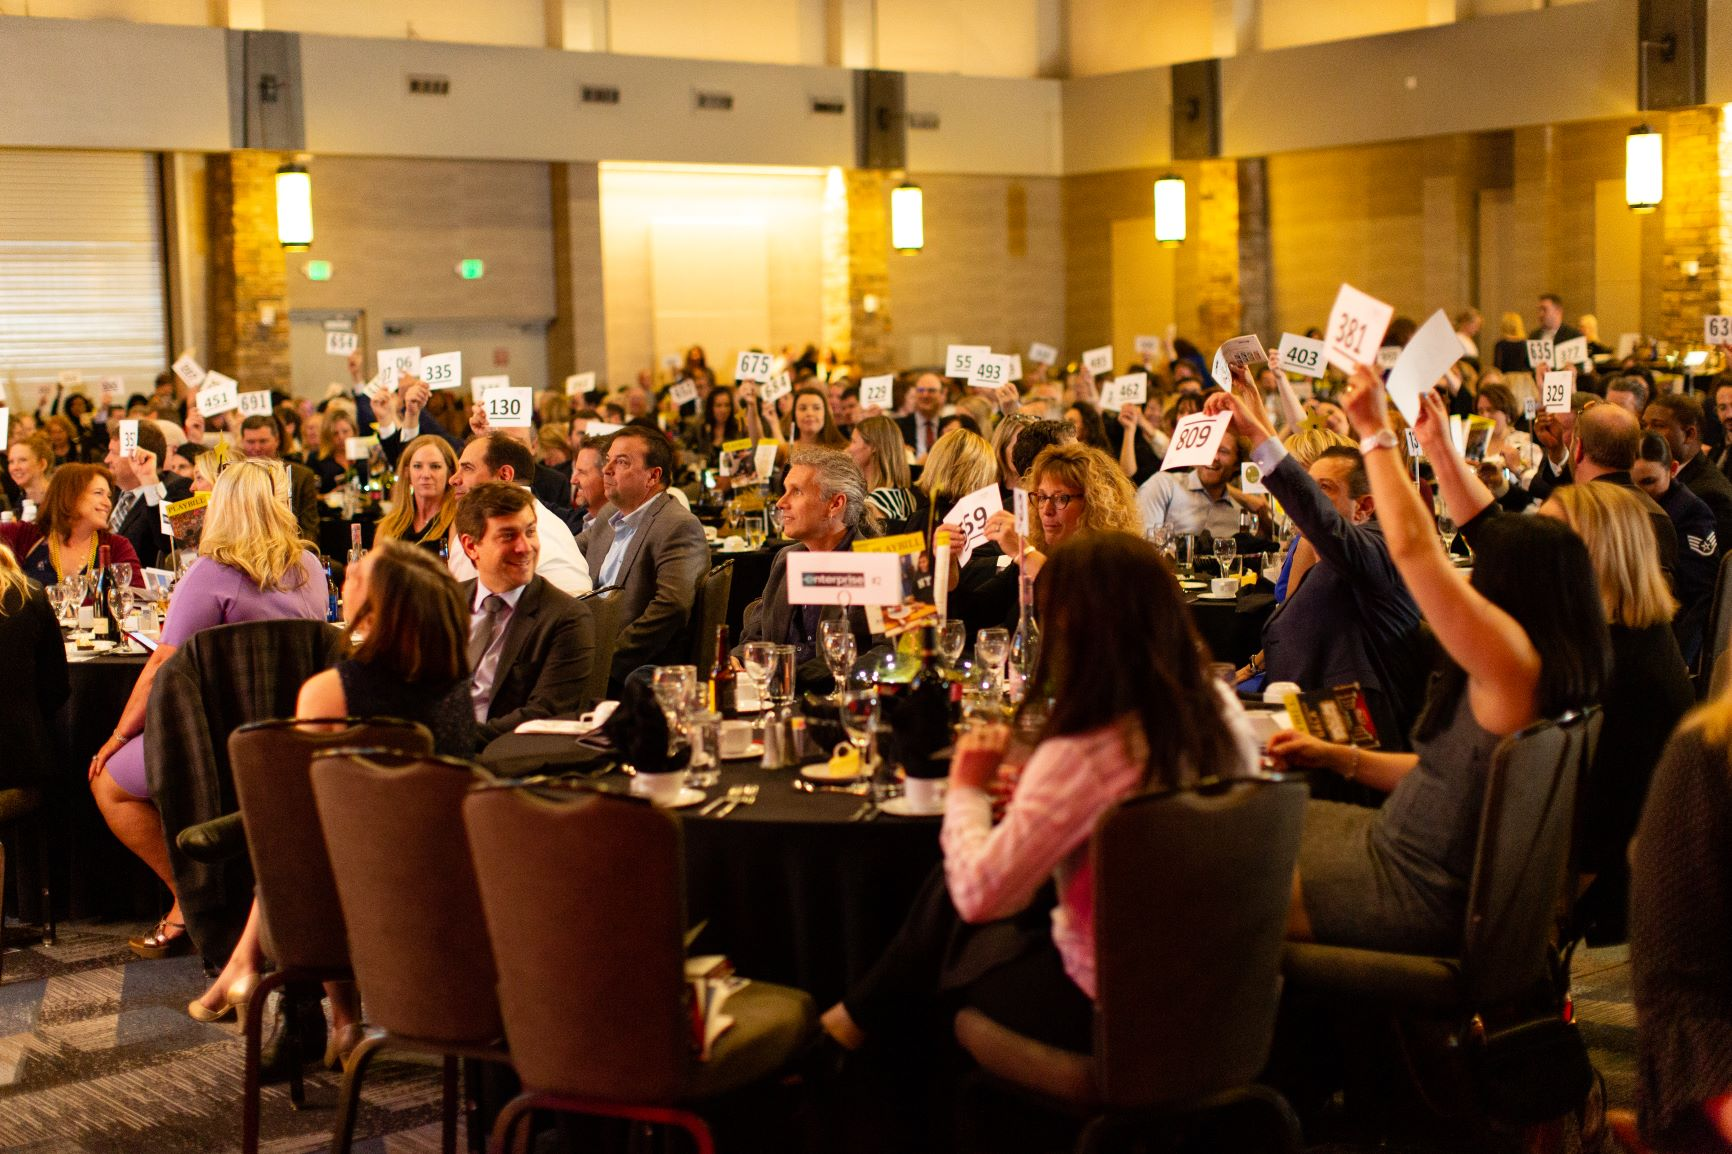 Fifth Annual Cherry Creek Schools Foundation Gala Celebrates Innovation, Equity and Broadway-sized Dreams